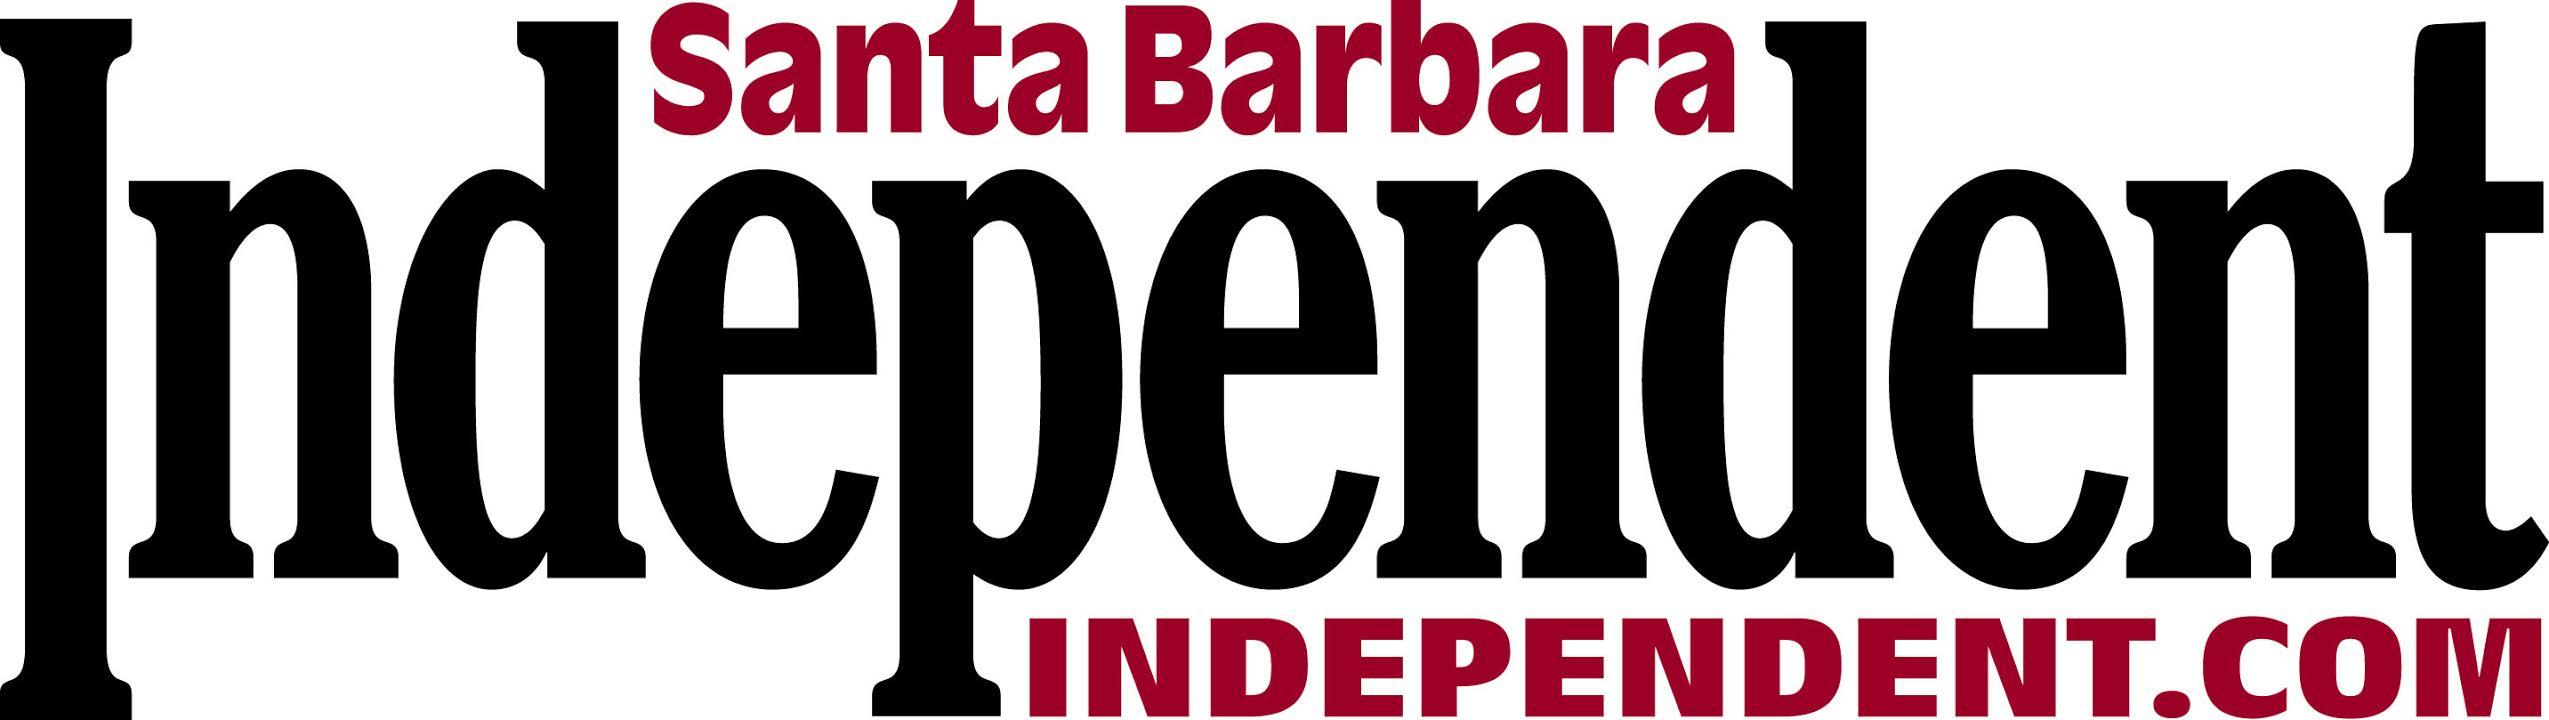 Independent_logo.jpeg